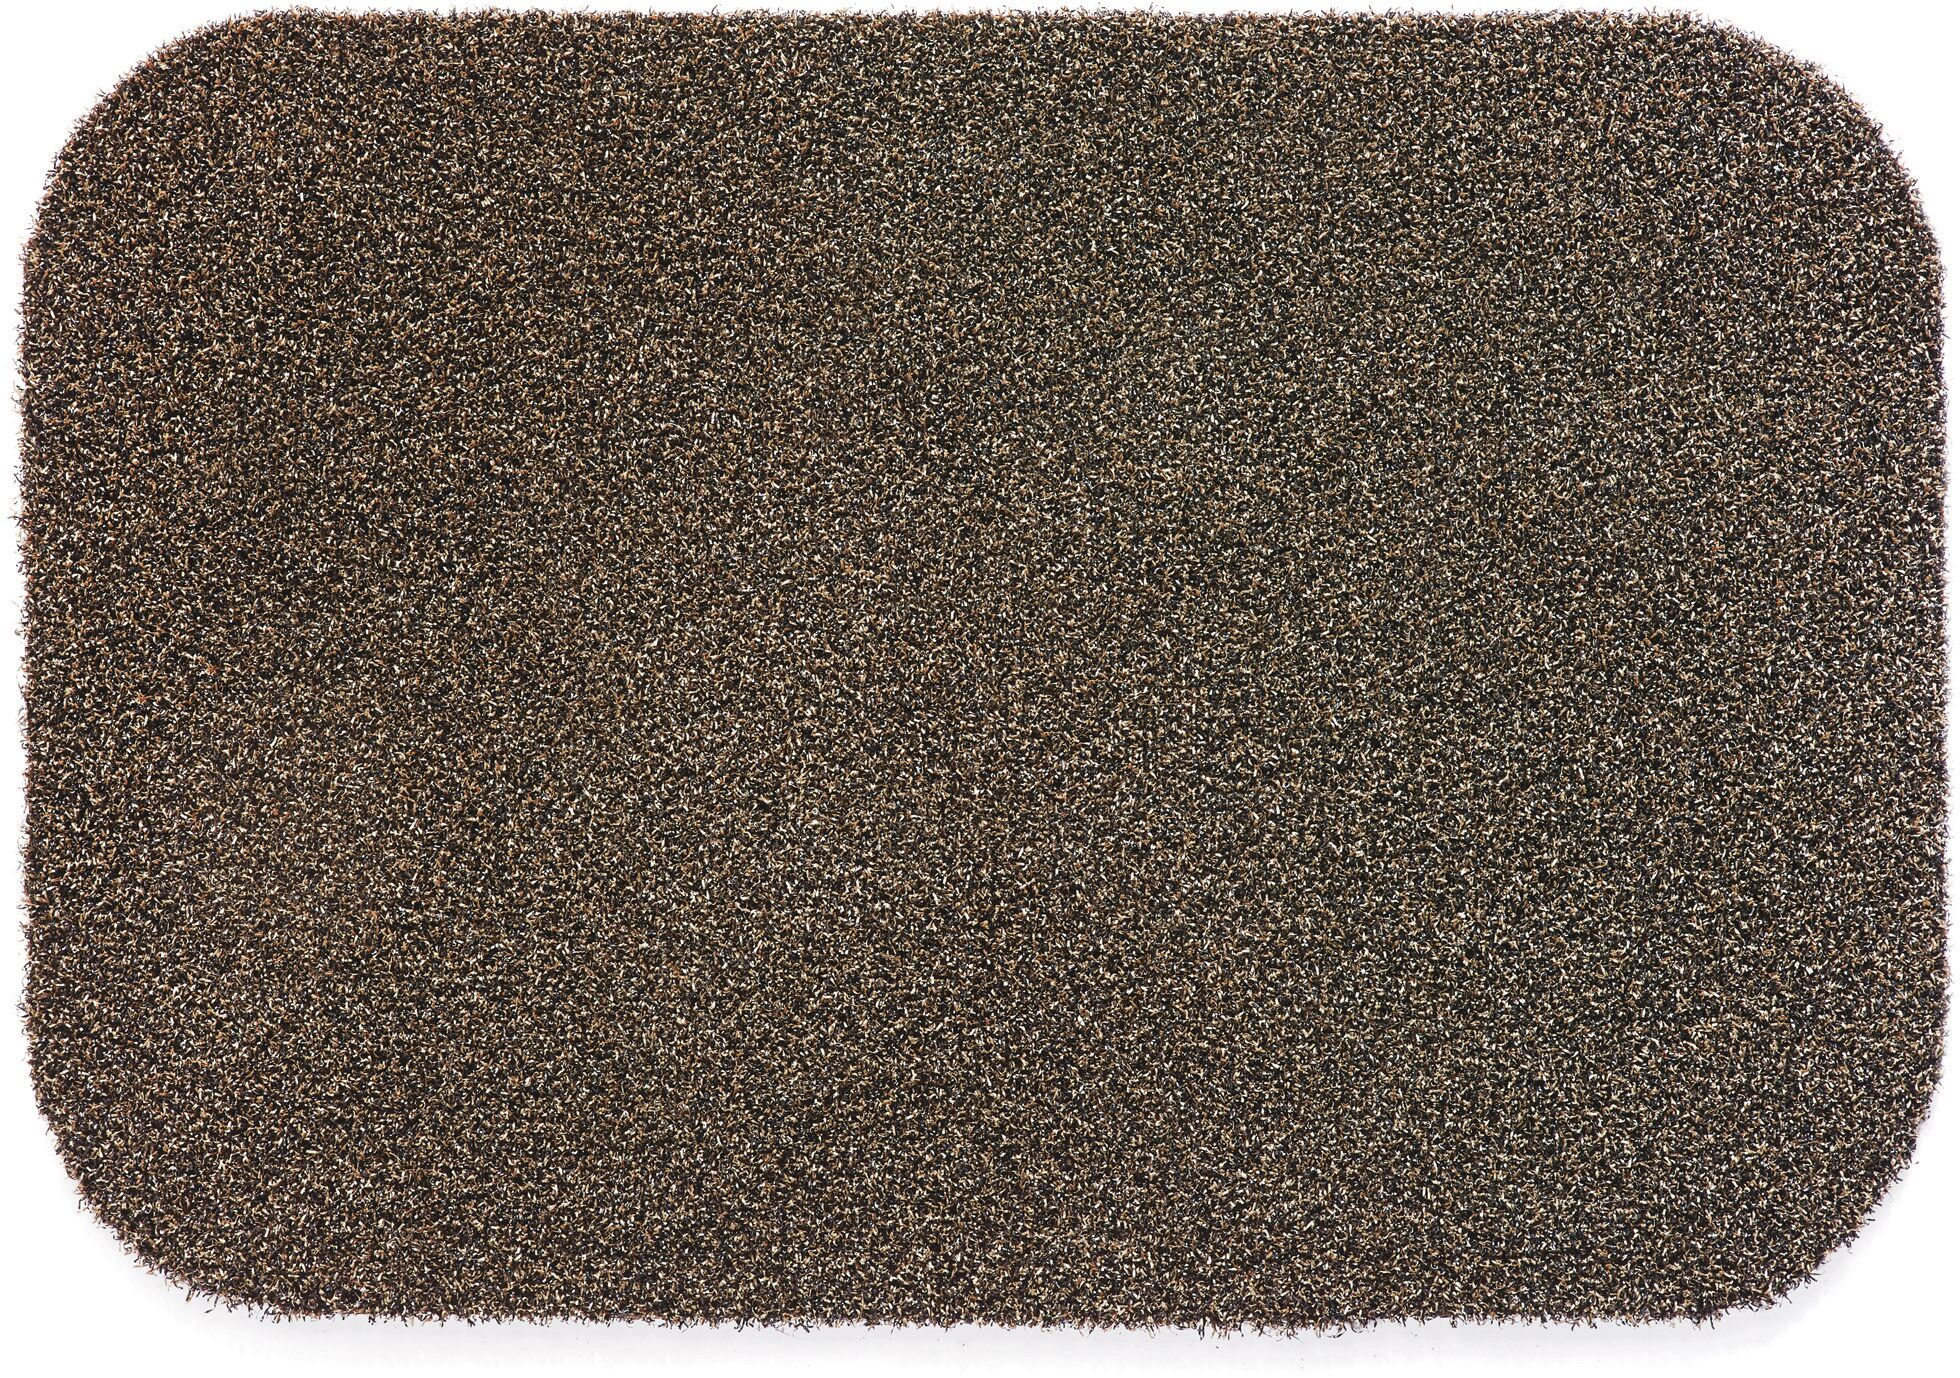 Muddle Mat Doormat Color: Coffee, Mat Size: Rectangle 1'11.5